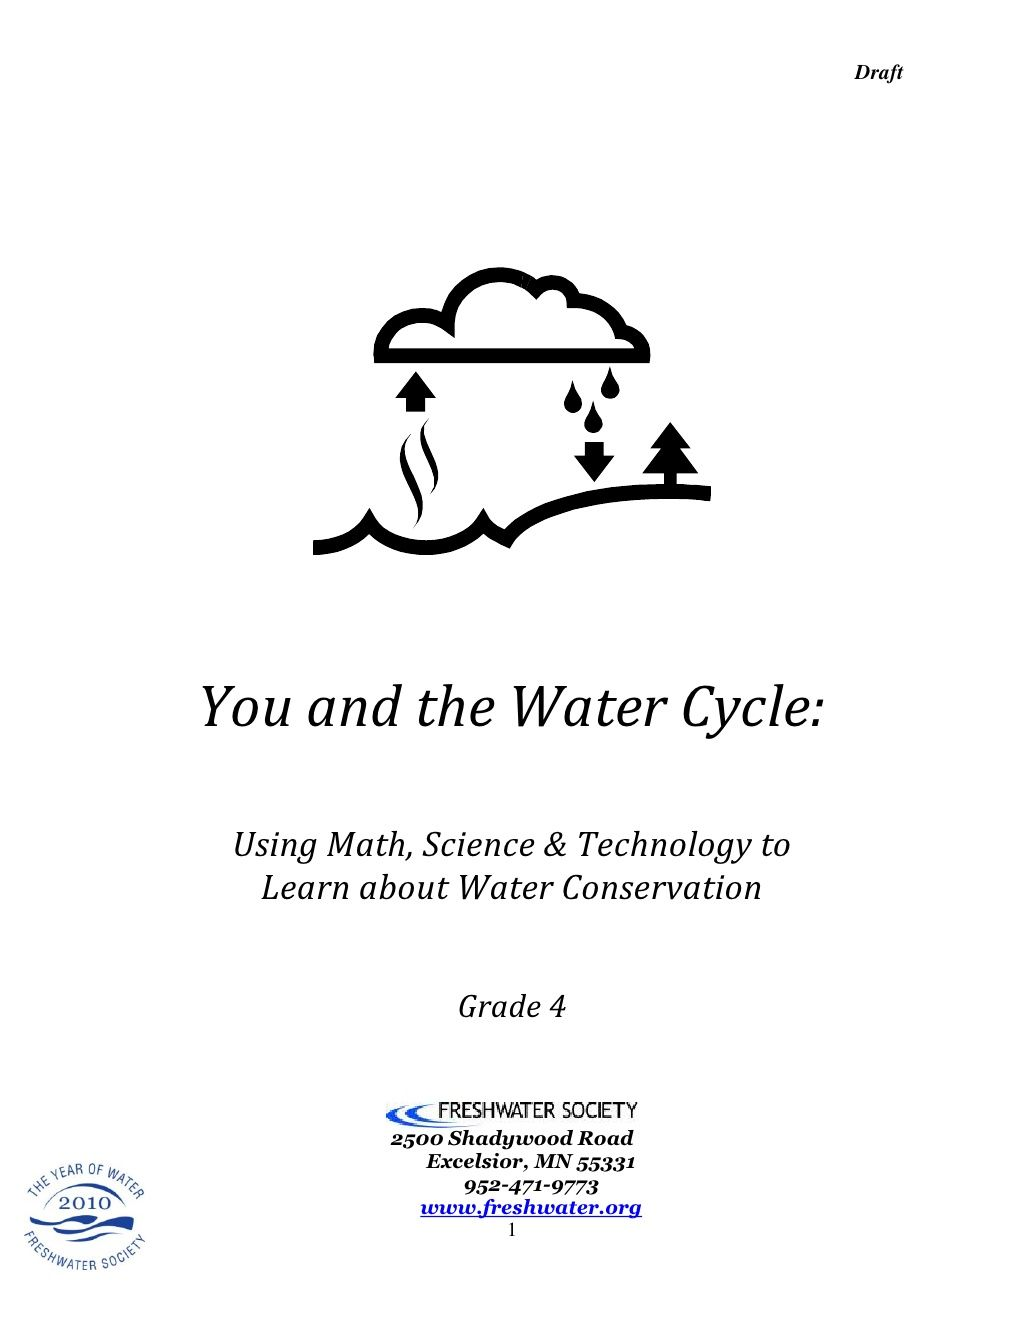 Pin By Tisa On Teaching Idea Science And Technology Environmental Studies Conservation Essay In English Hindi Protection Topic